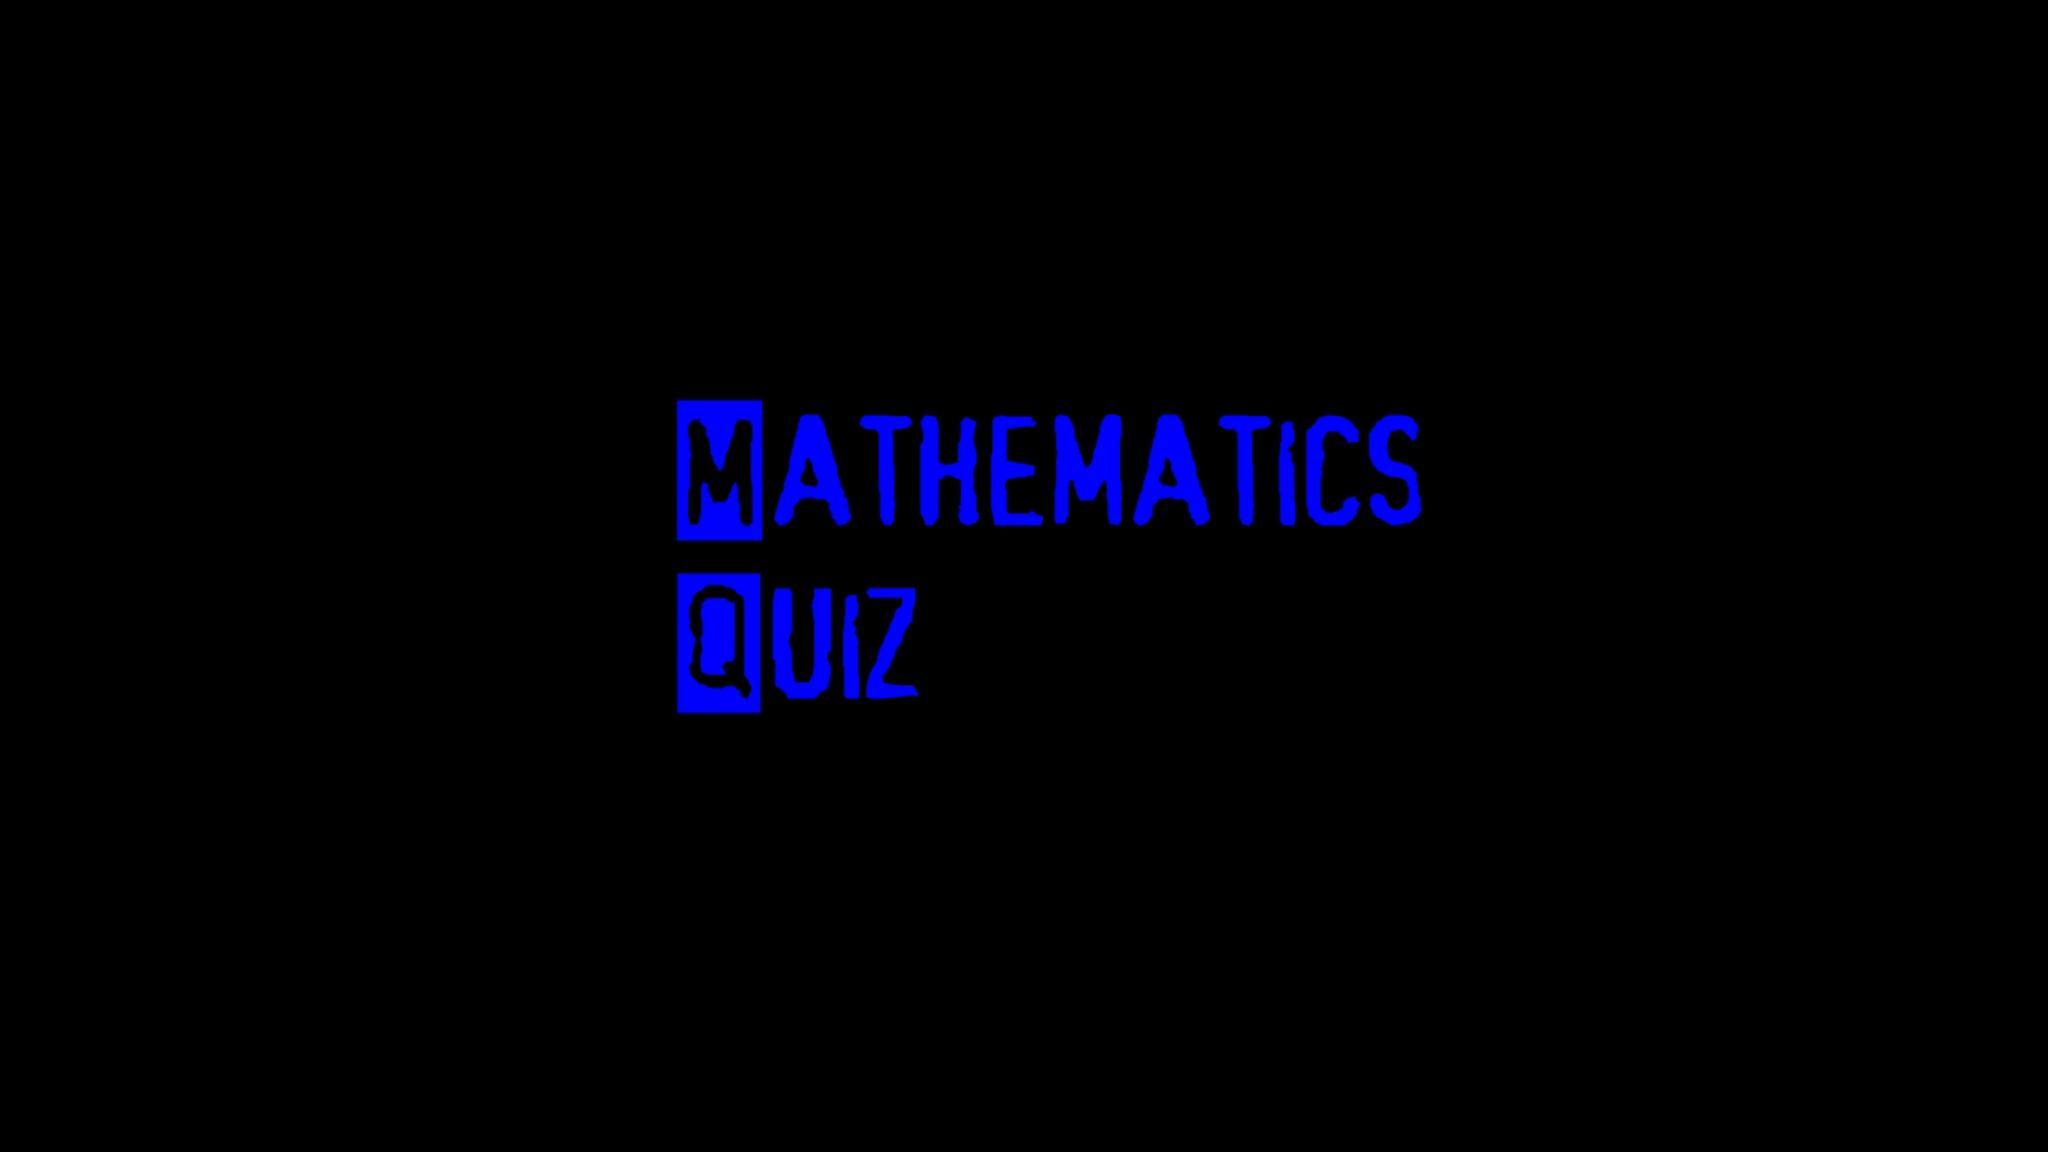 Mathematics (Short Quiz)